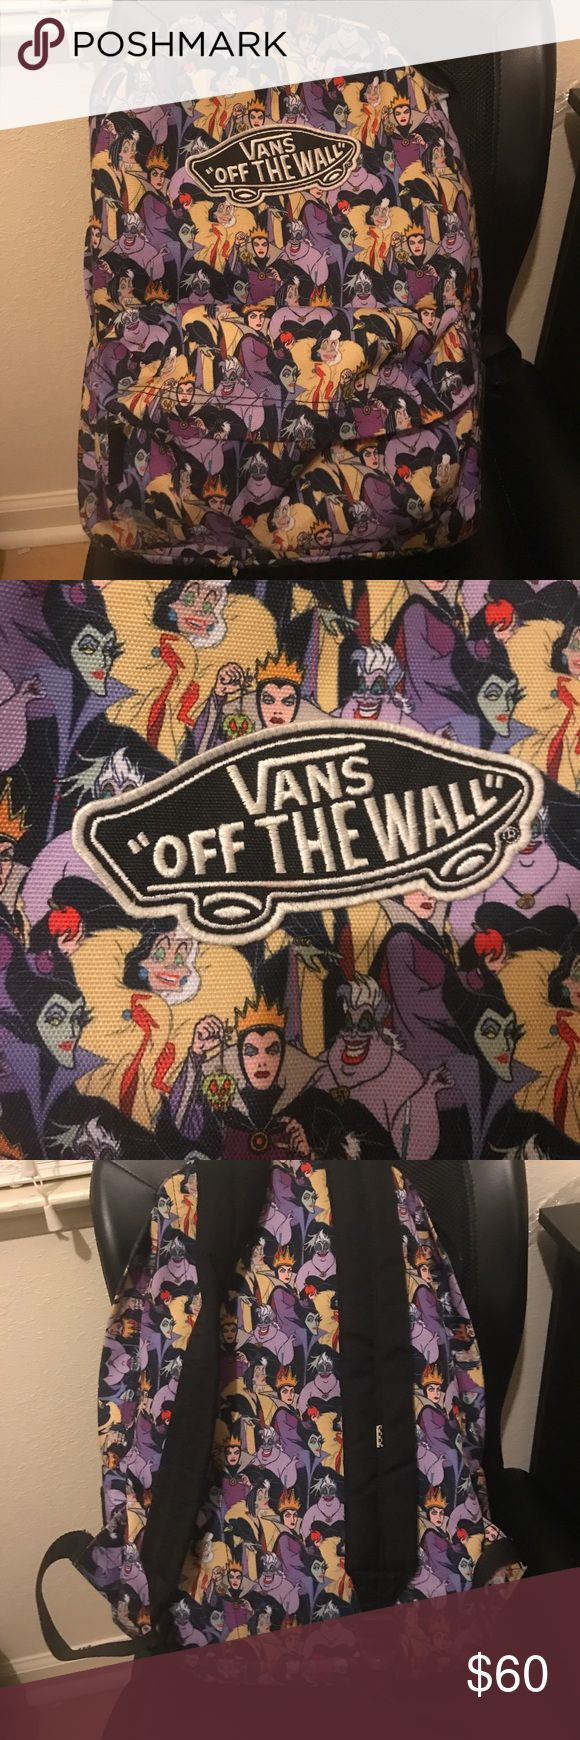 Vans Disney villains book bag Nice sized backpack. Made by vans. Great, strong material. Carried it for a semester. Can't find it in stores anymore. Offers encouraged. Vans Bags Backpacks